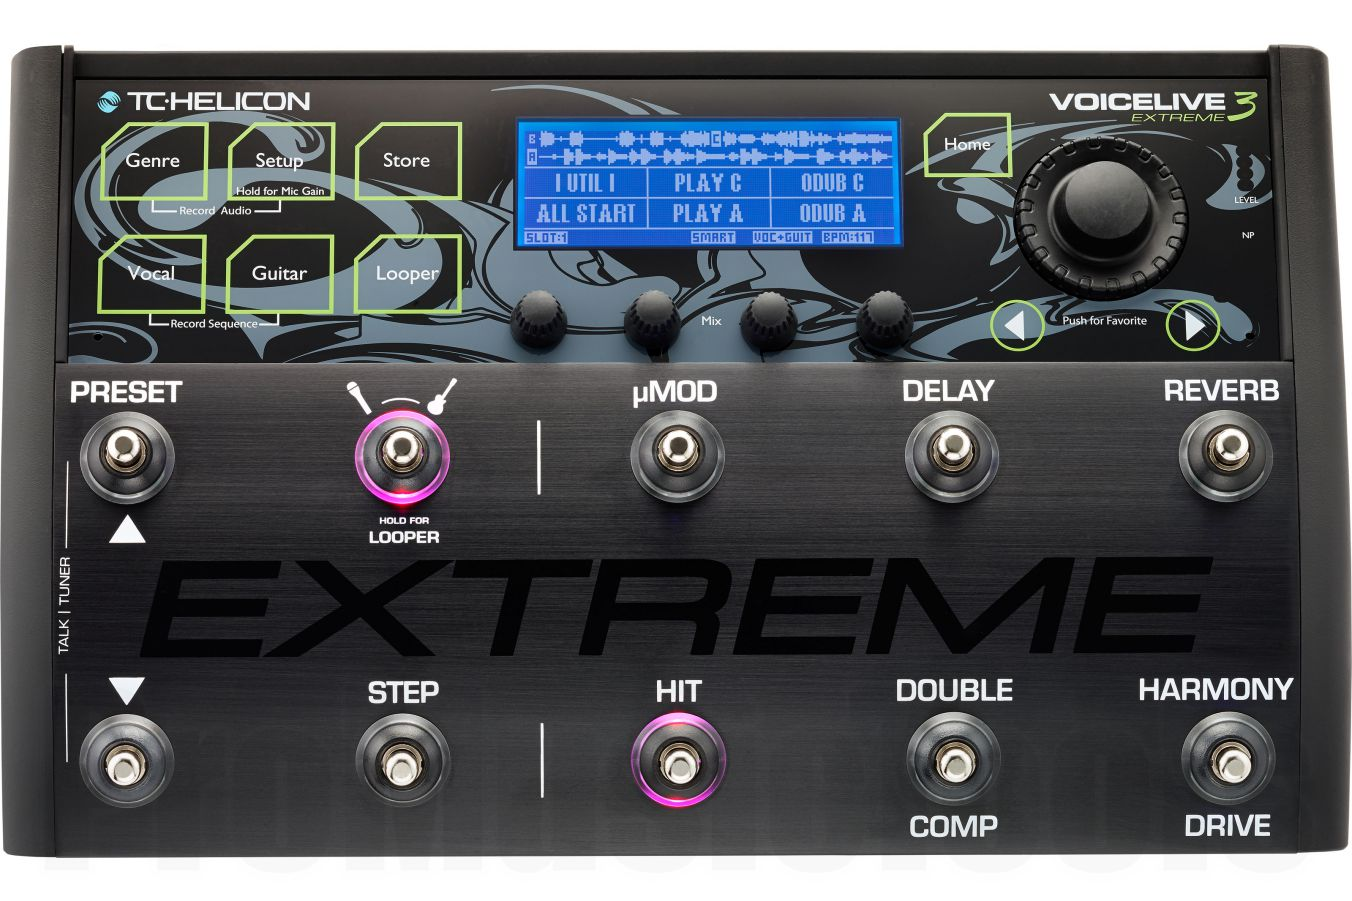 TC Helicon VoiceLive 3 Extreme - demo